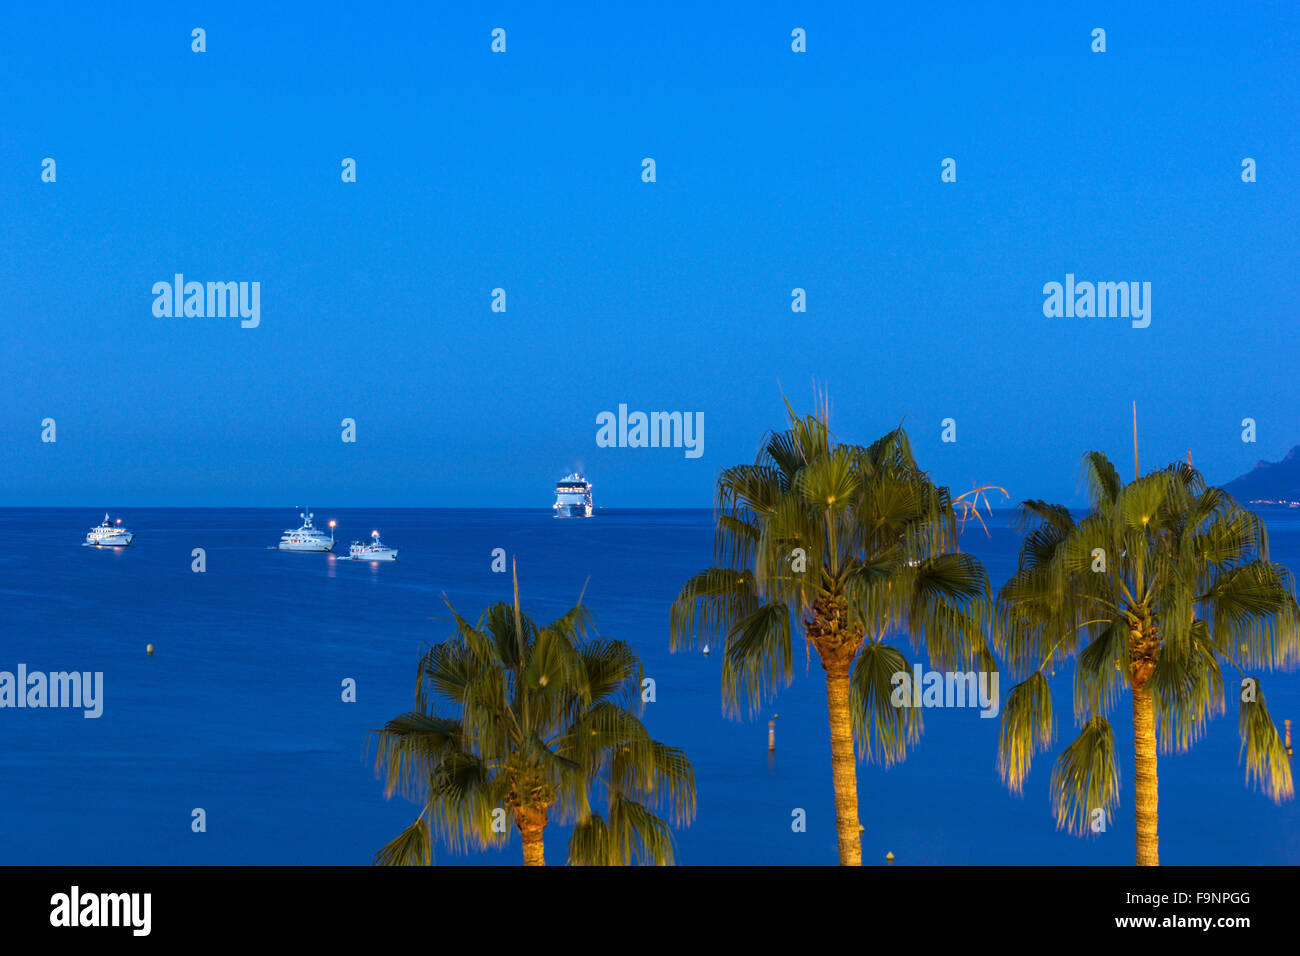 Ships on Mediterranean Sea near the shores of Cannes on French Riviera - Stock Image